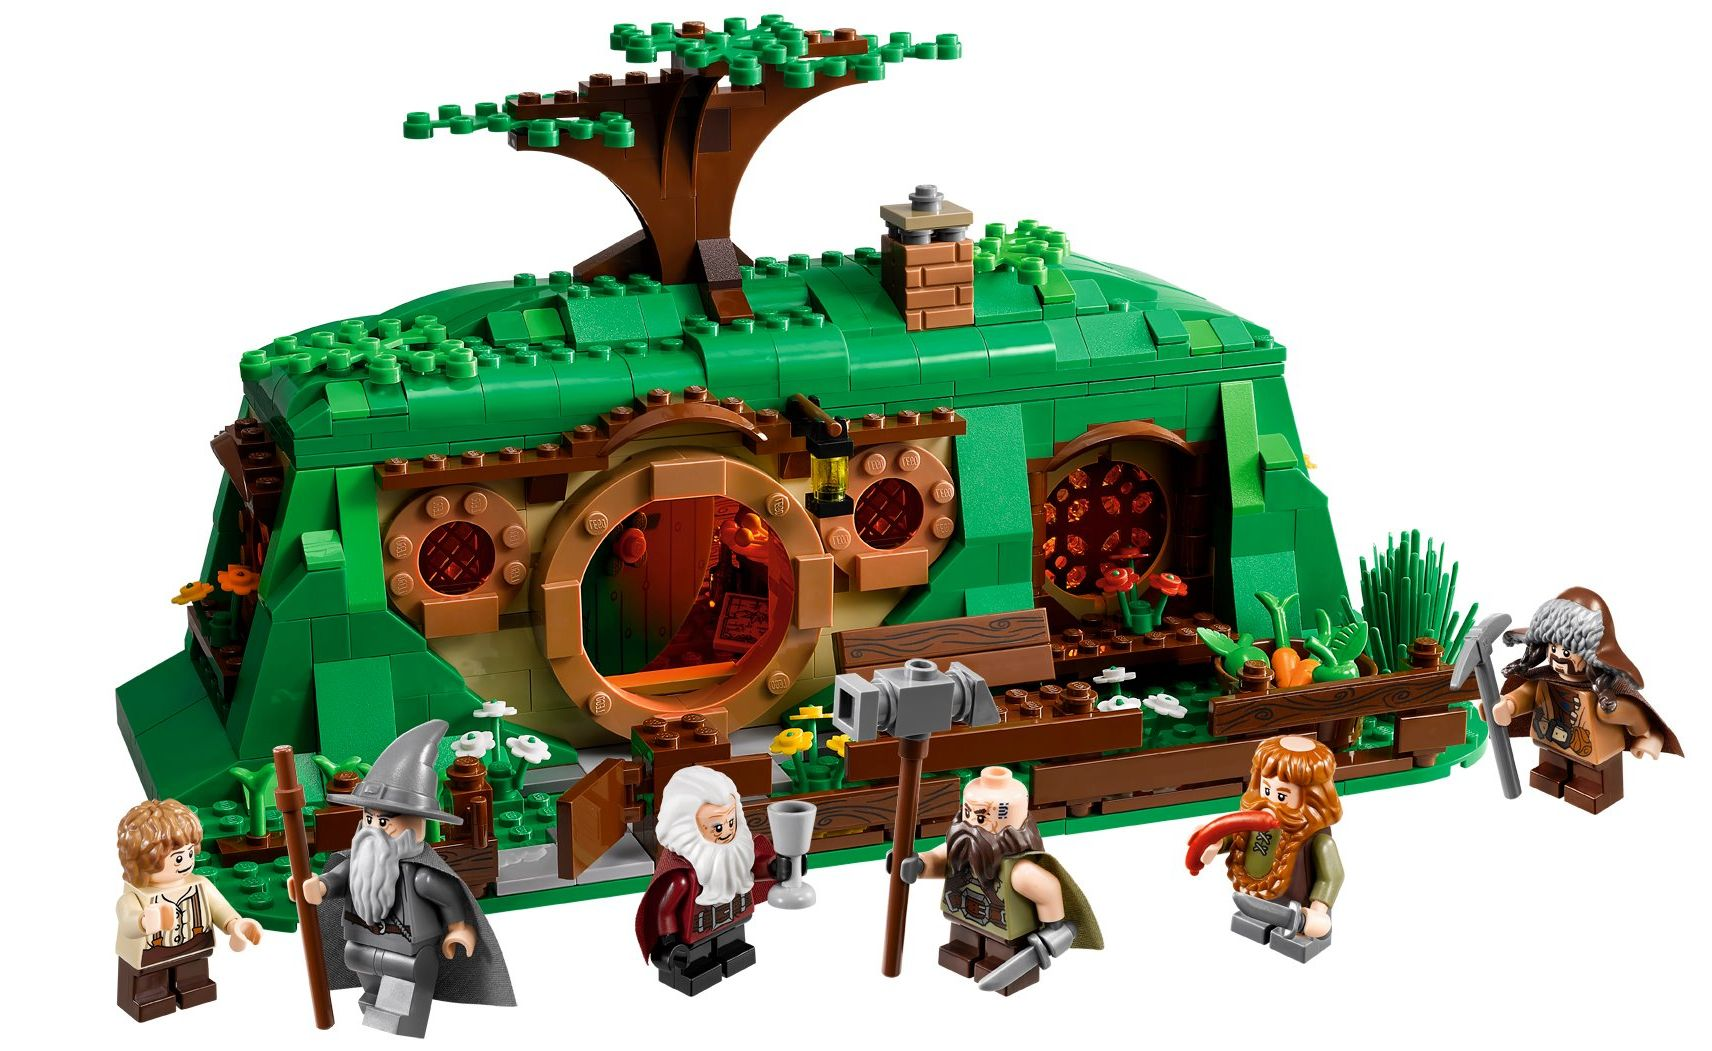 Lego-lord-of-the-rings-New-2013-hobbit-s